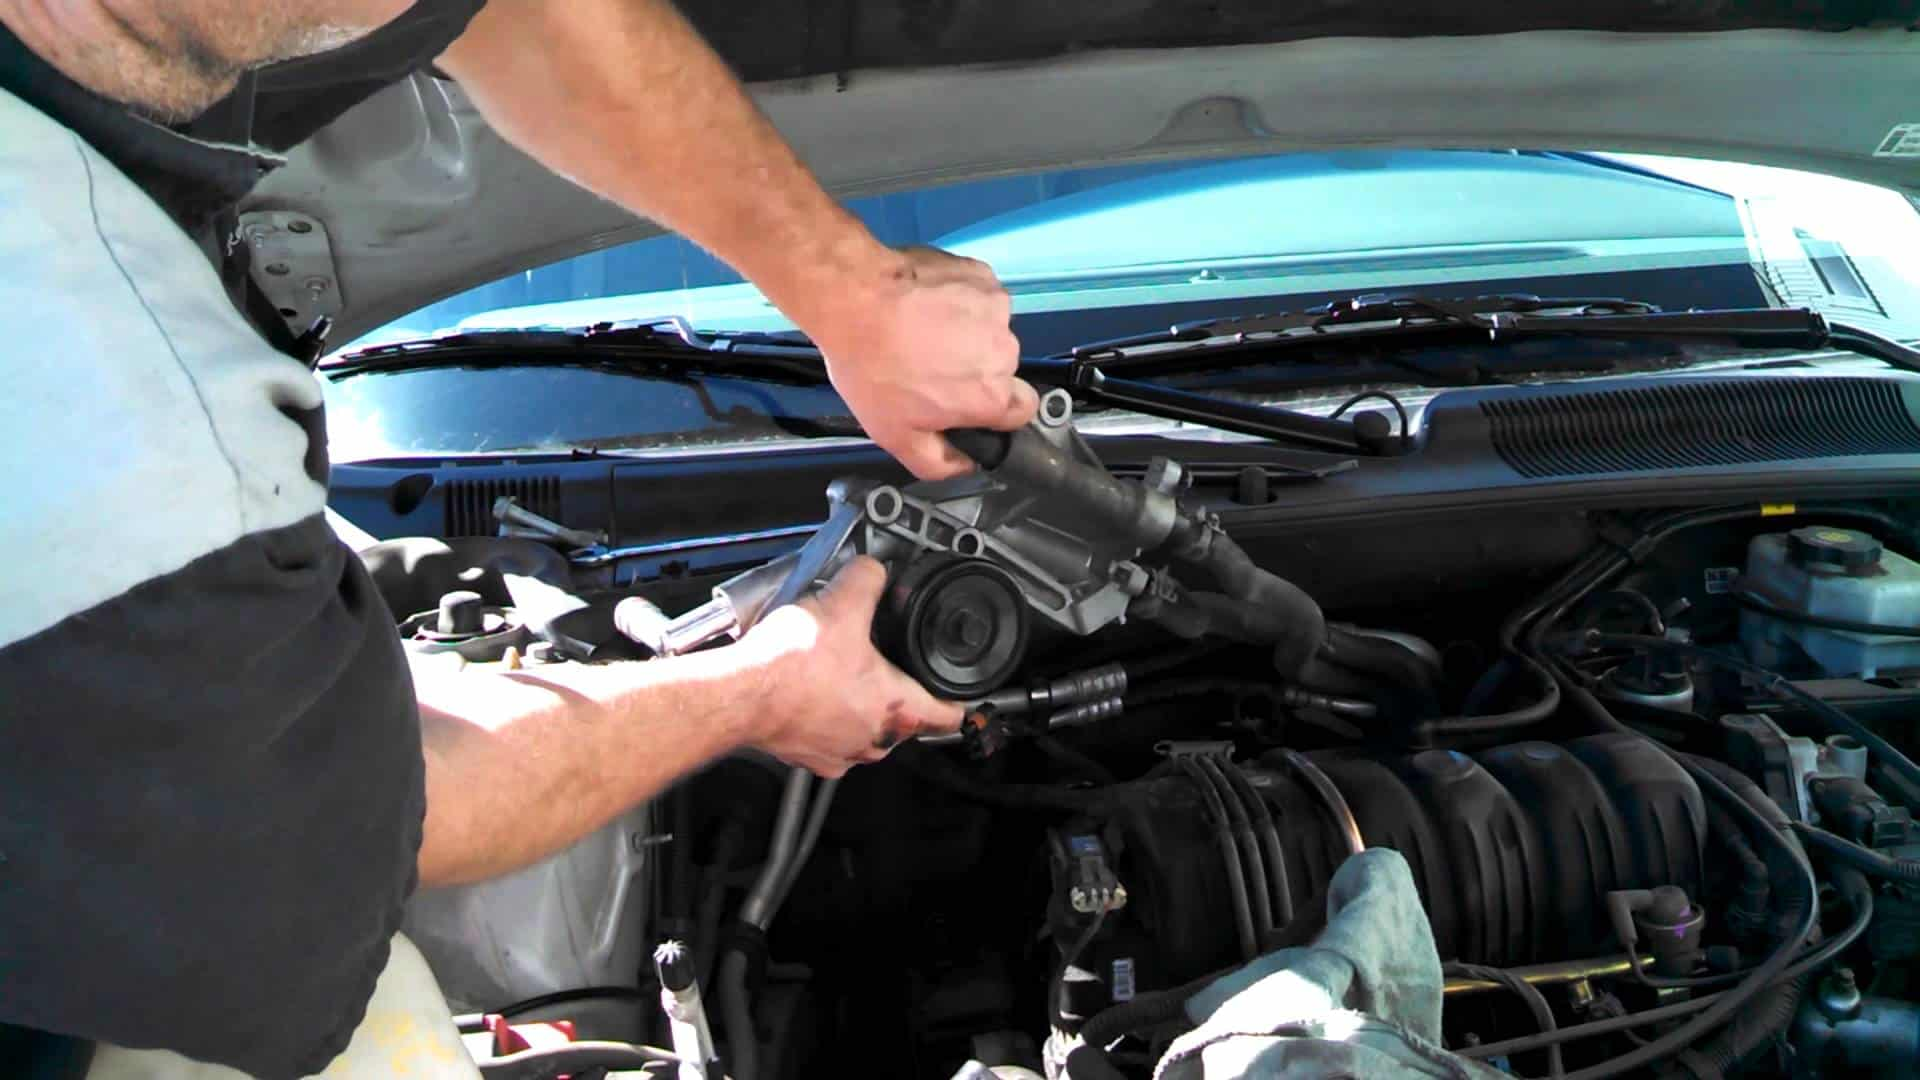 how to get rid of 2003 buick lesabre transmission problems?2003 buick lesabre transmission problems